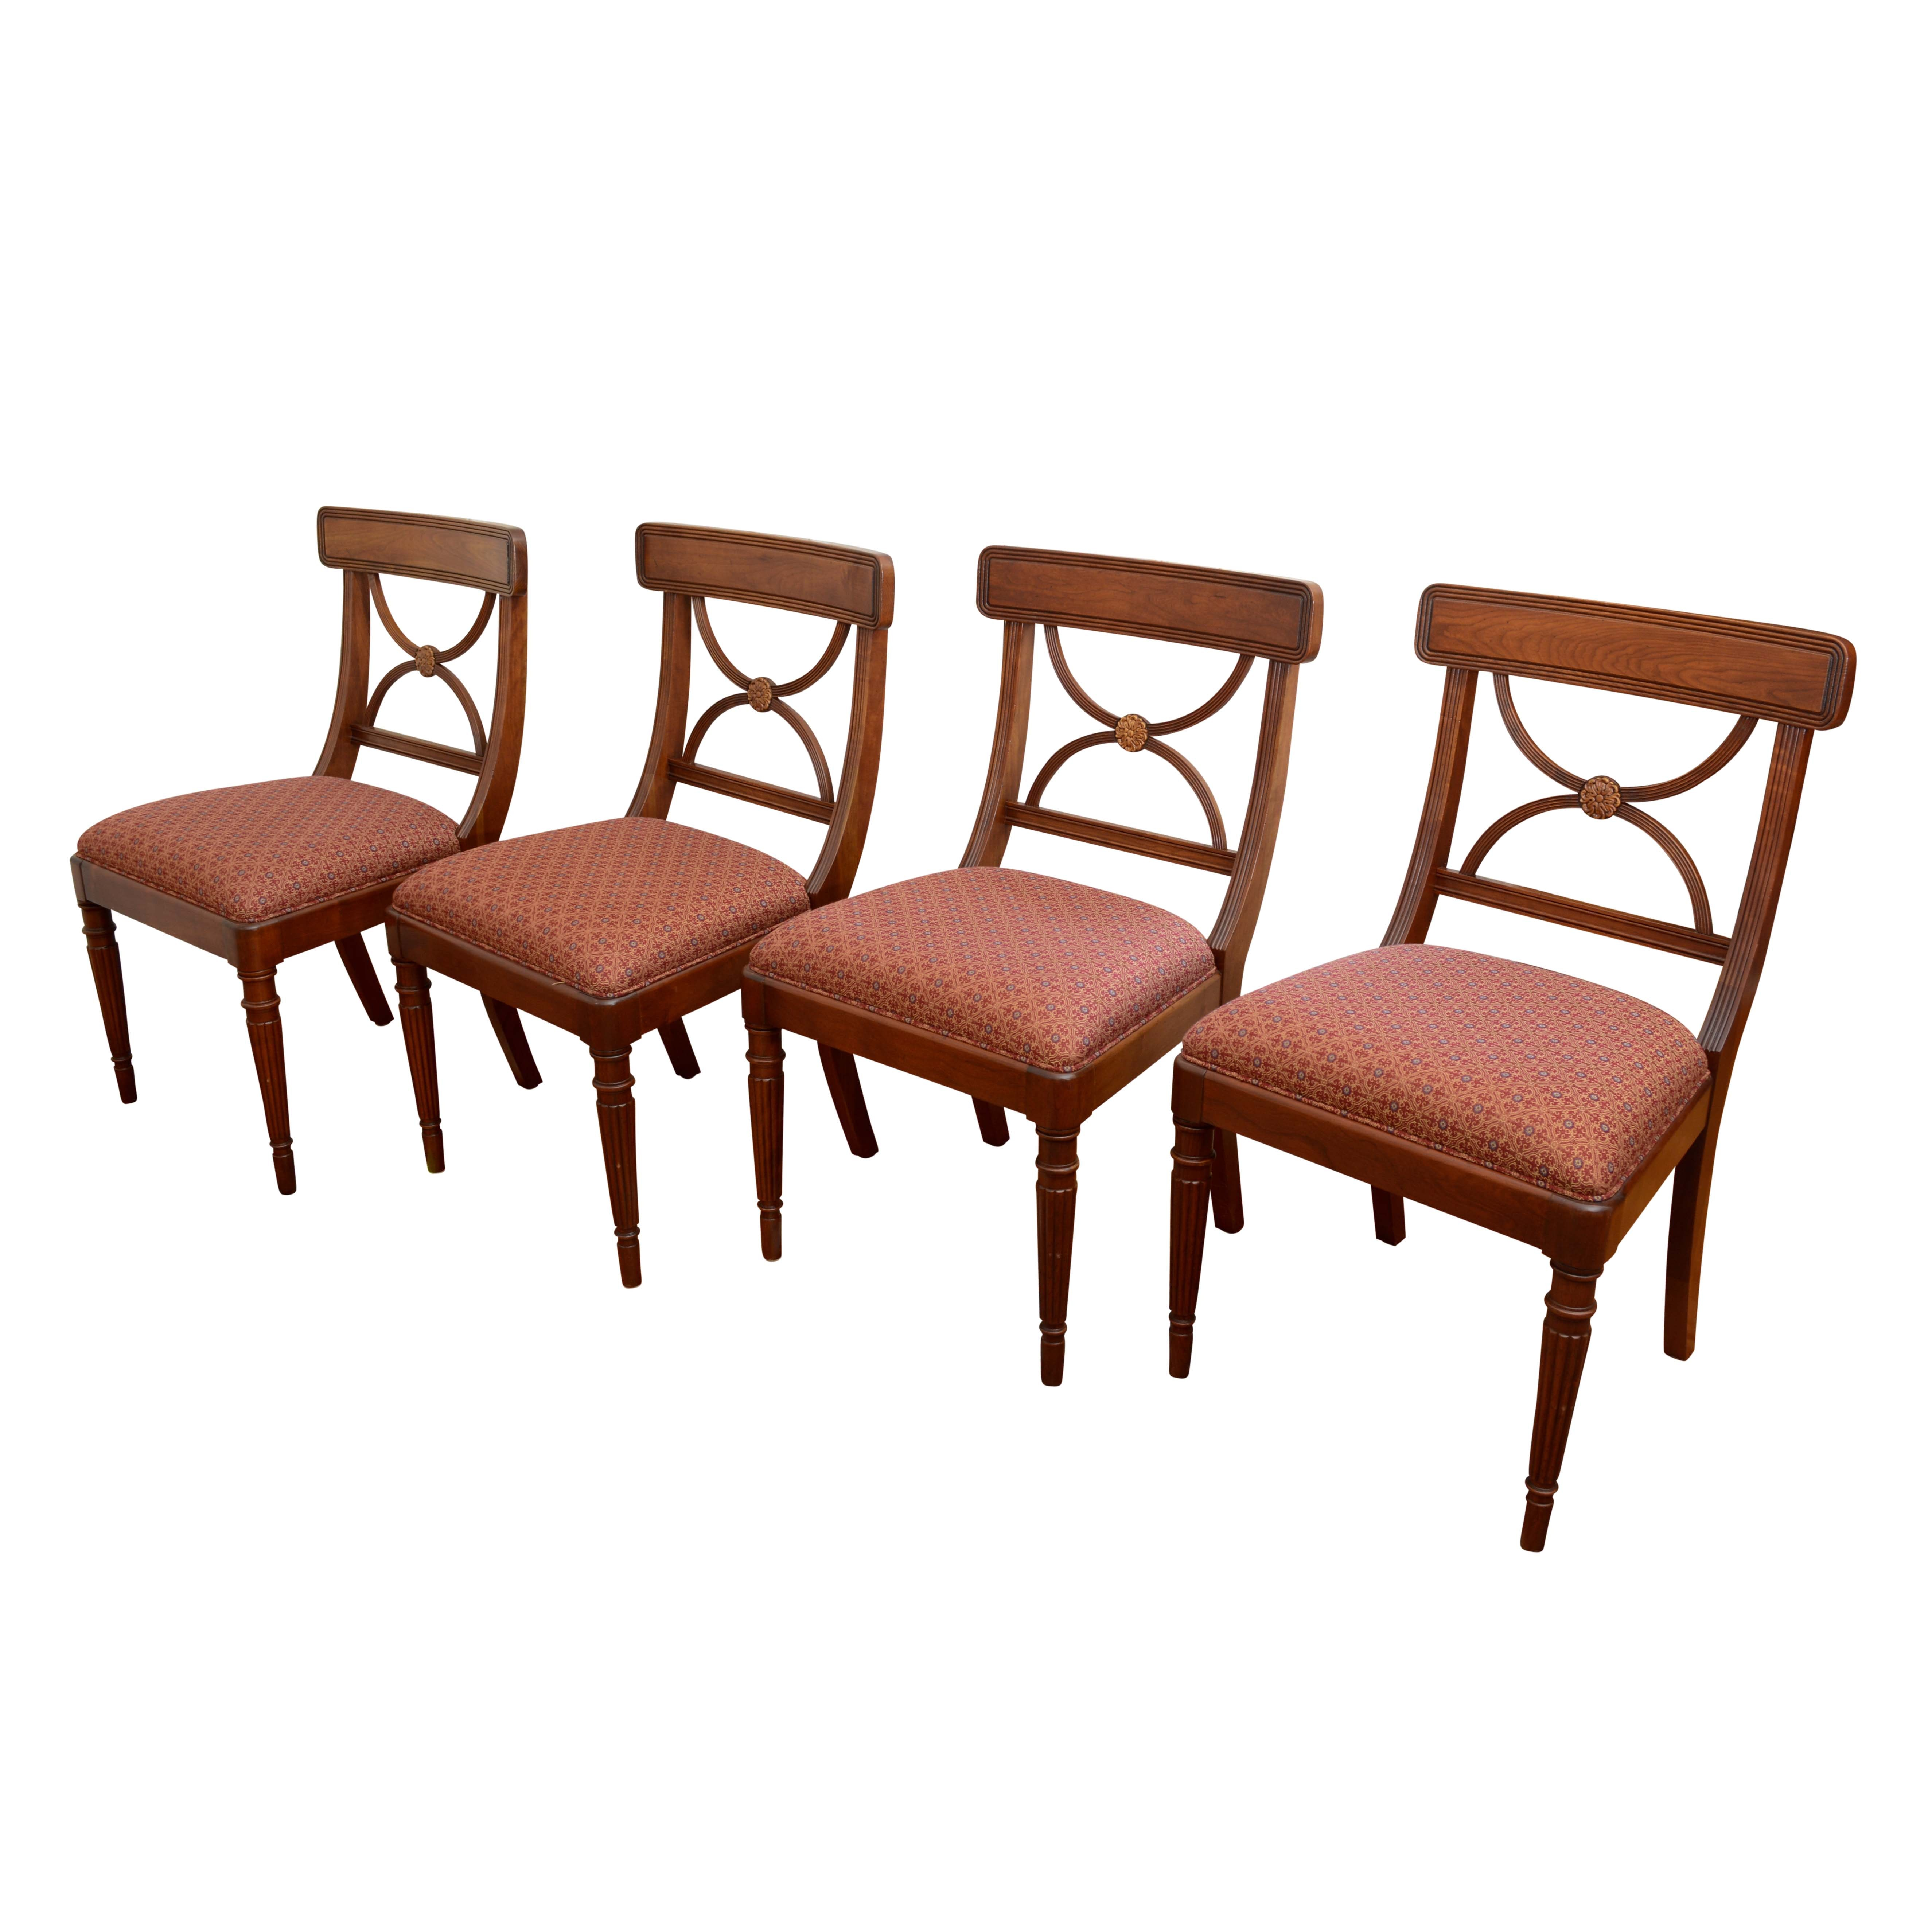 Sheraton Style Side Chairs by Statton